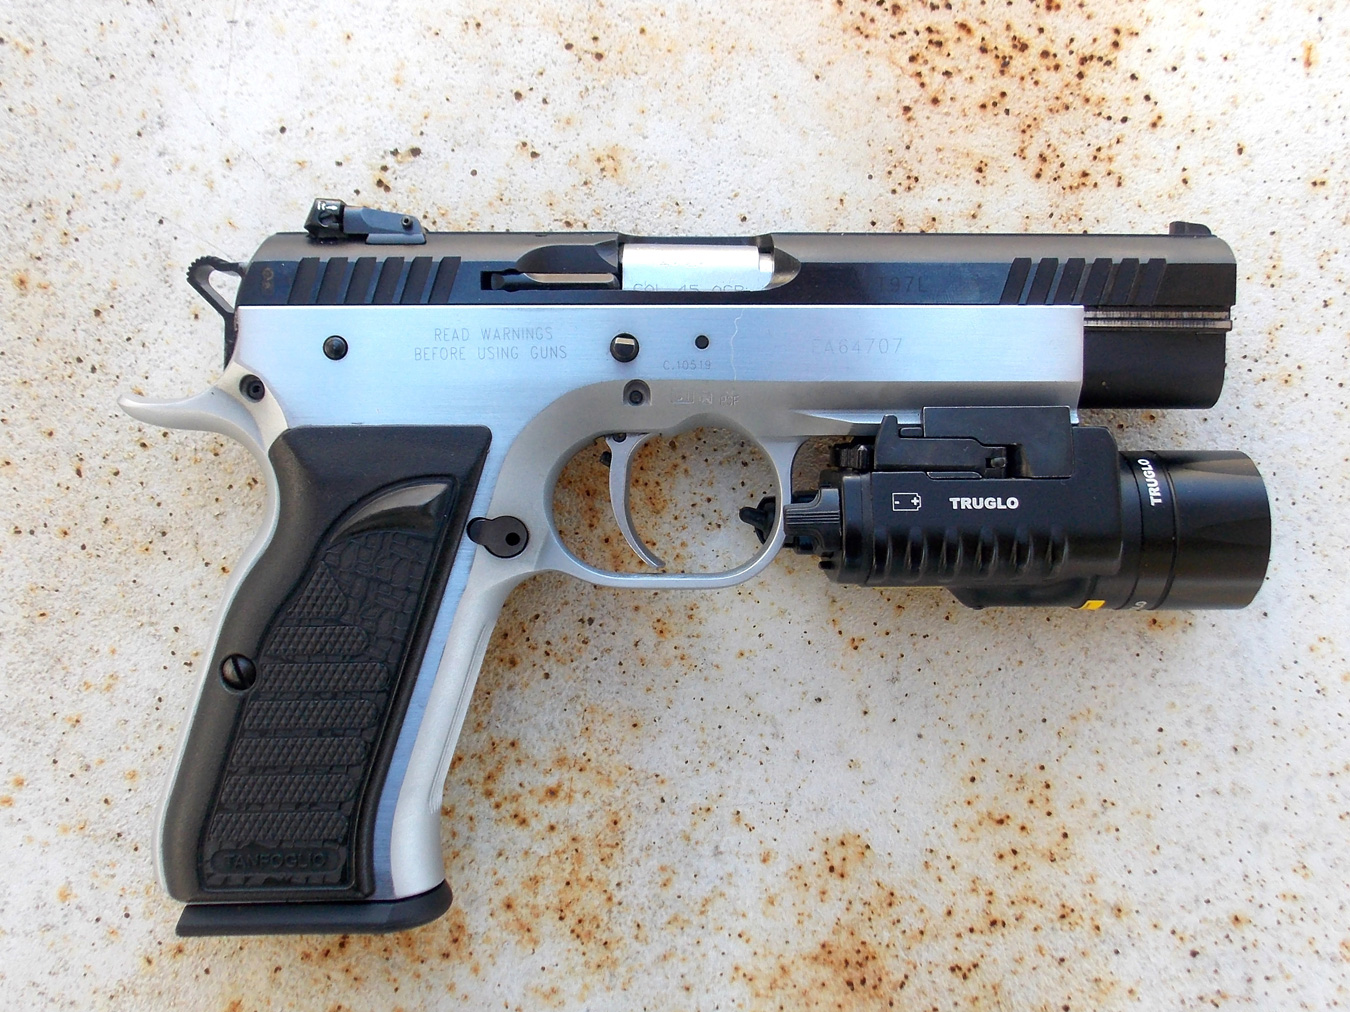 EAA Witness Elite Match pistol with TruGlo combat light right profile